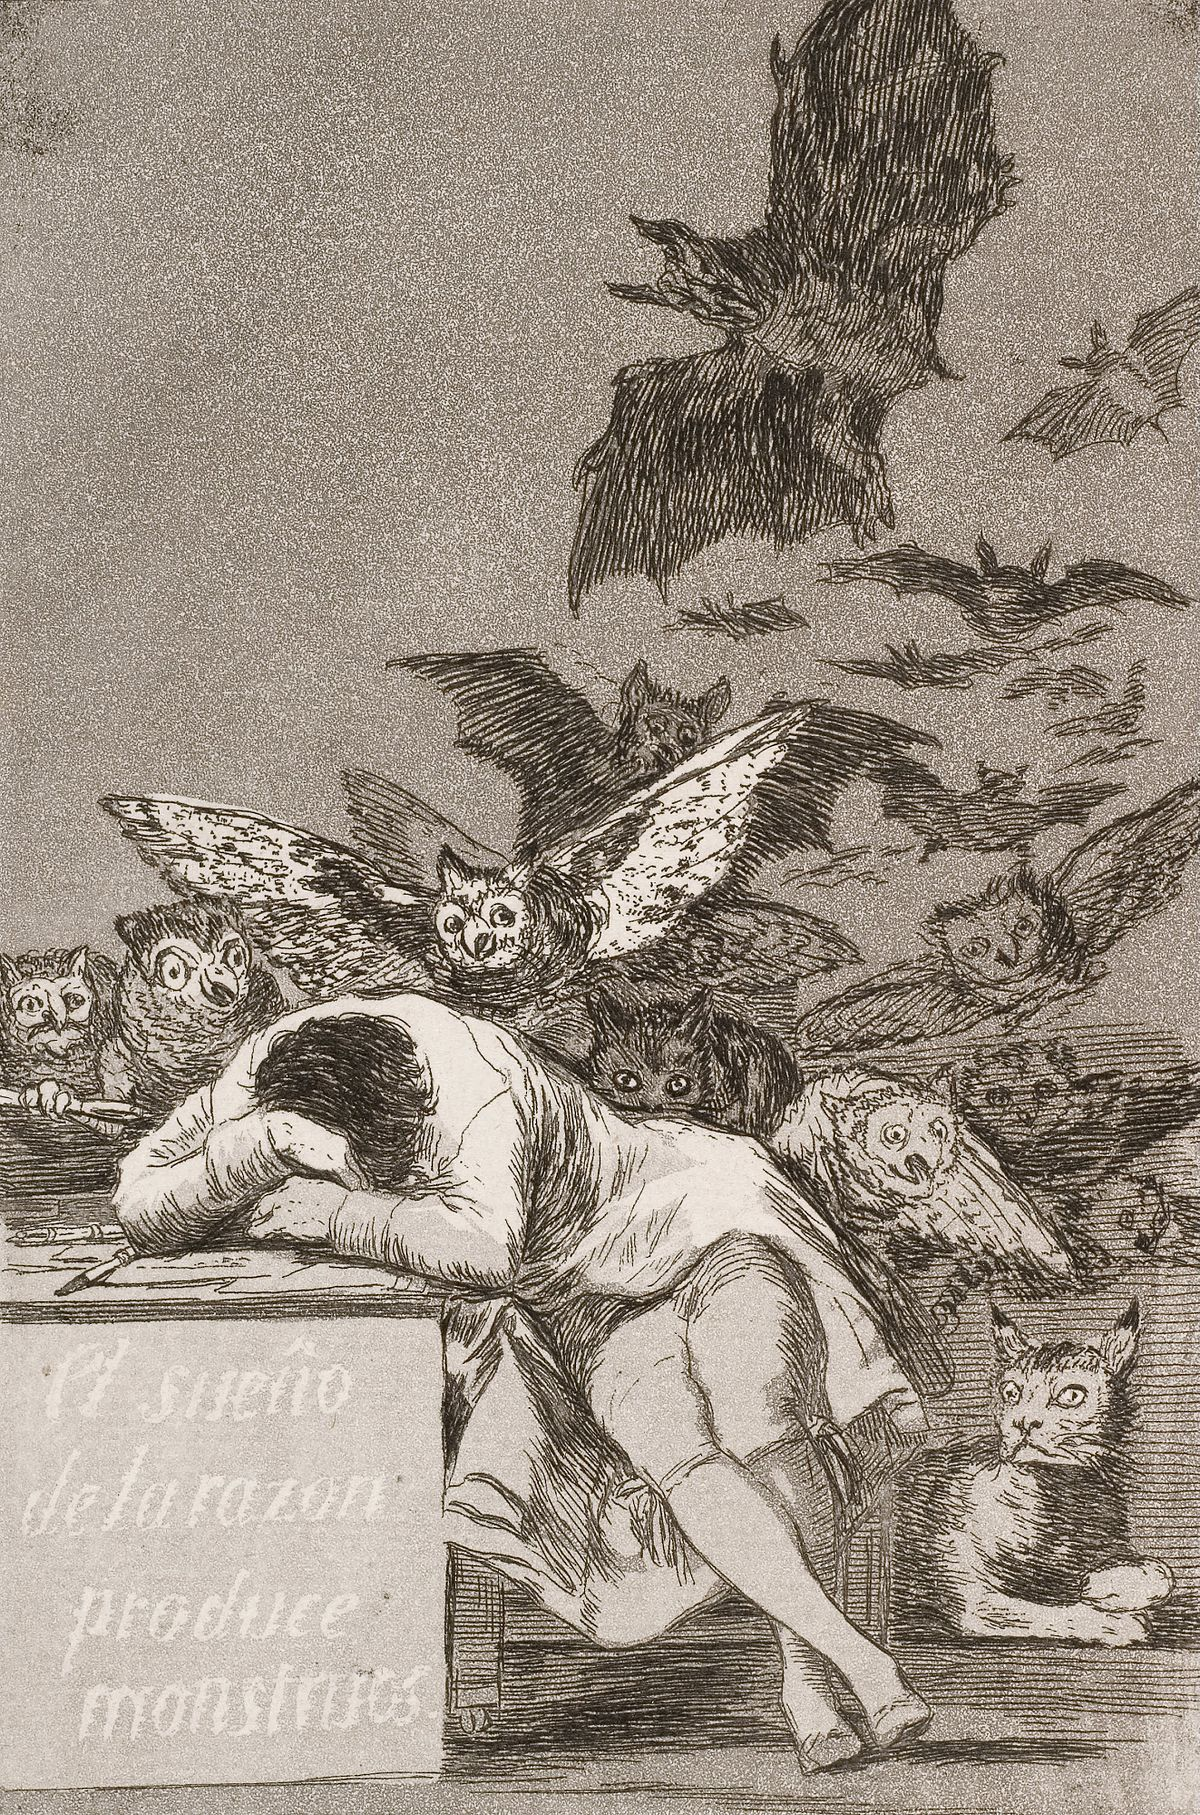 <em>The Dream of Reason Brings Forth Monsters</em> by Francisco Goya. Credit: Wikimedia Commons